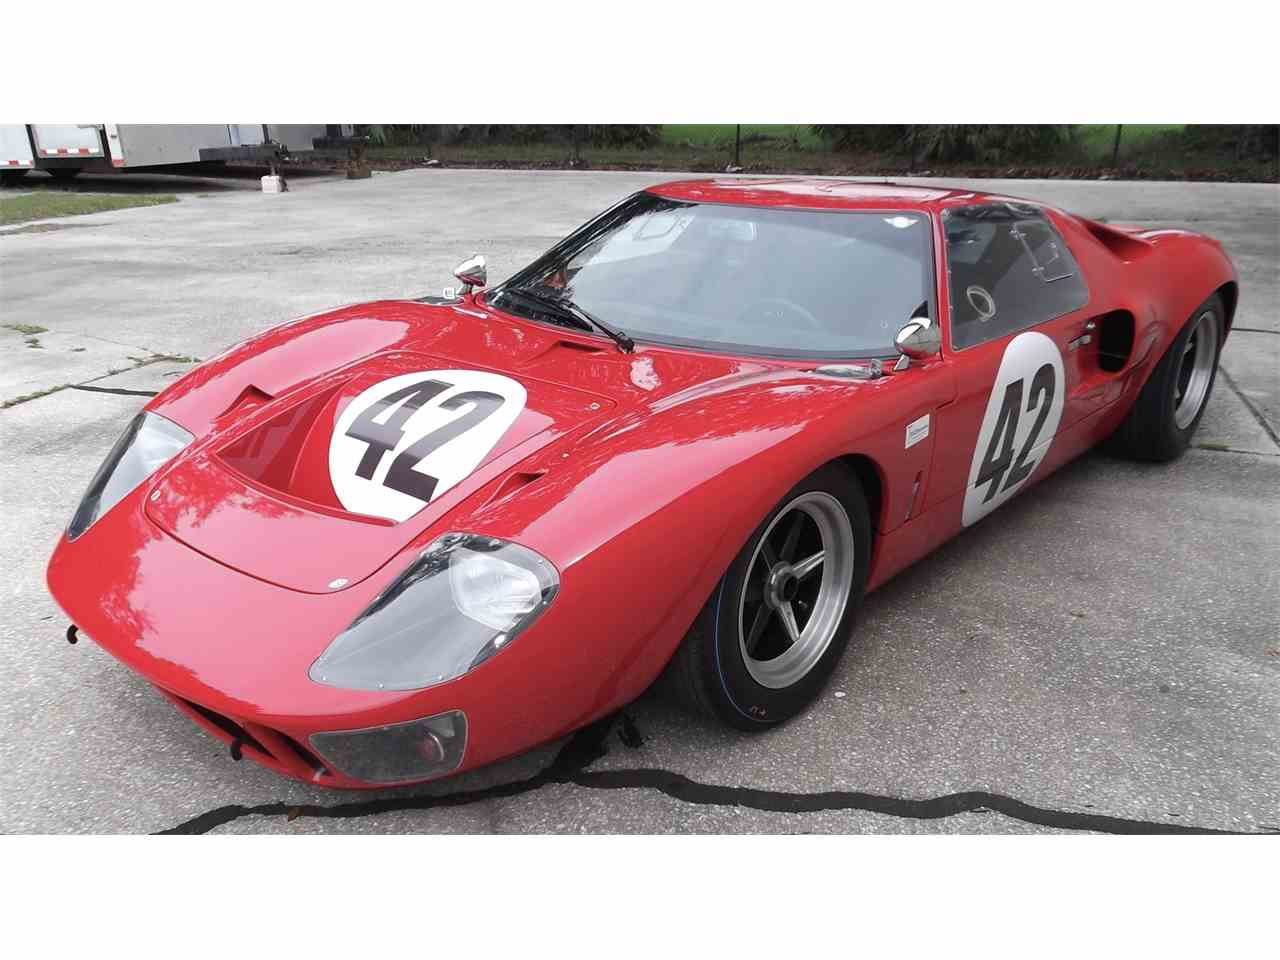 ford gt40 mk1 ford gt40 mk1 with ford gt40 mk1 amazing technical details ford gt mki chassis. Black Bedroom Furniture Sets. Home Design Ideas